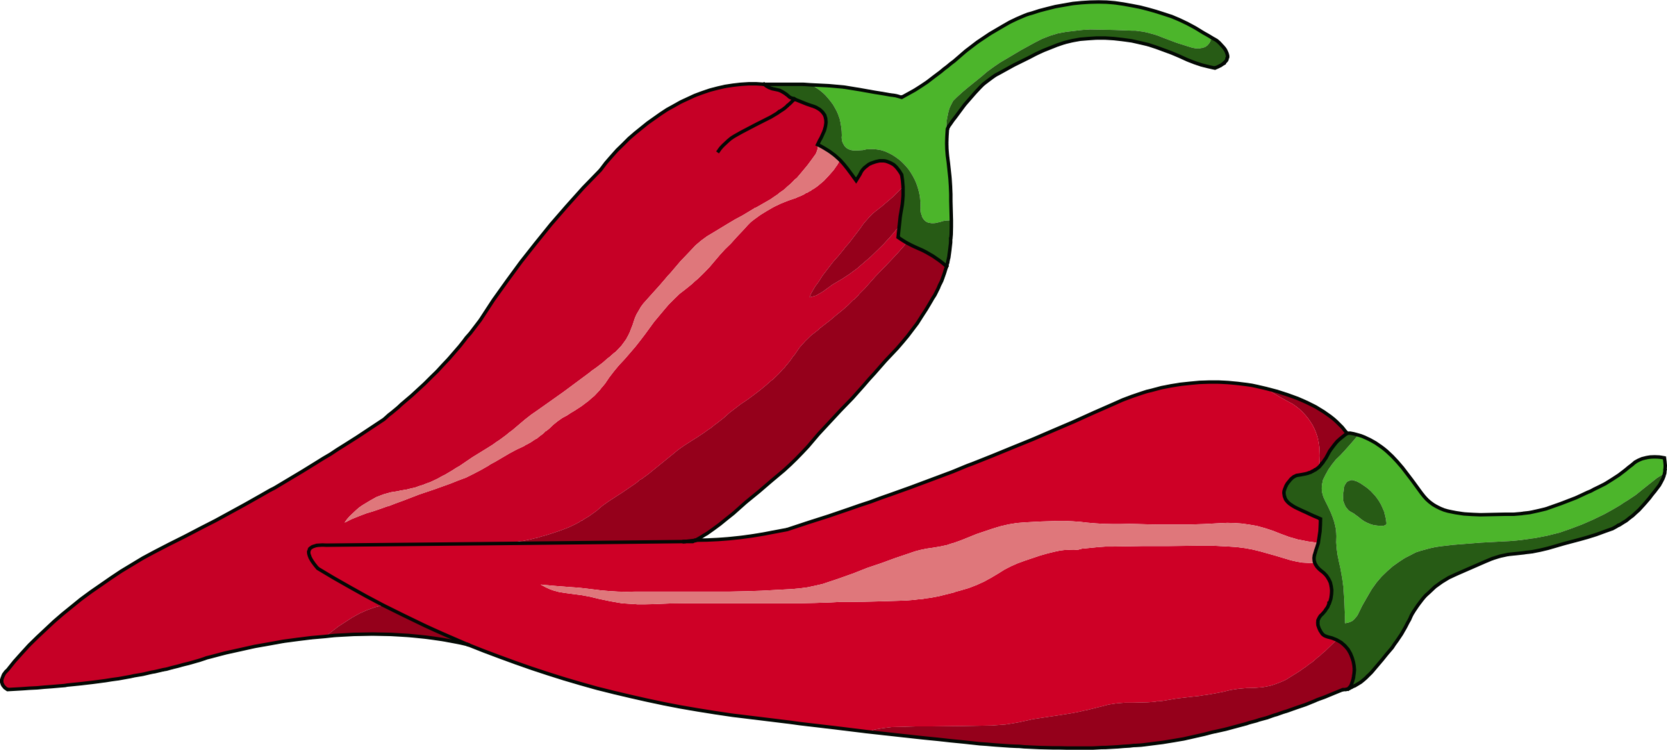 Chili drawing mexican. Con carne cuisine bell